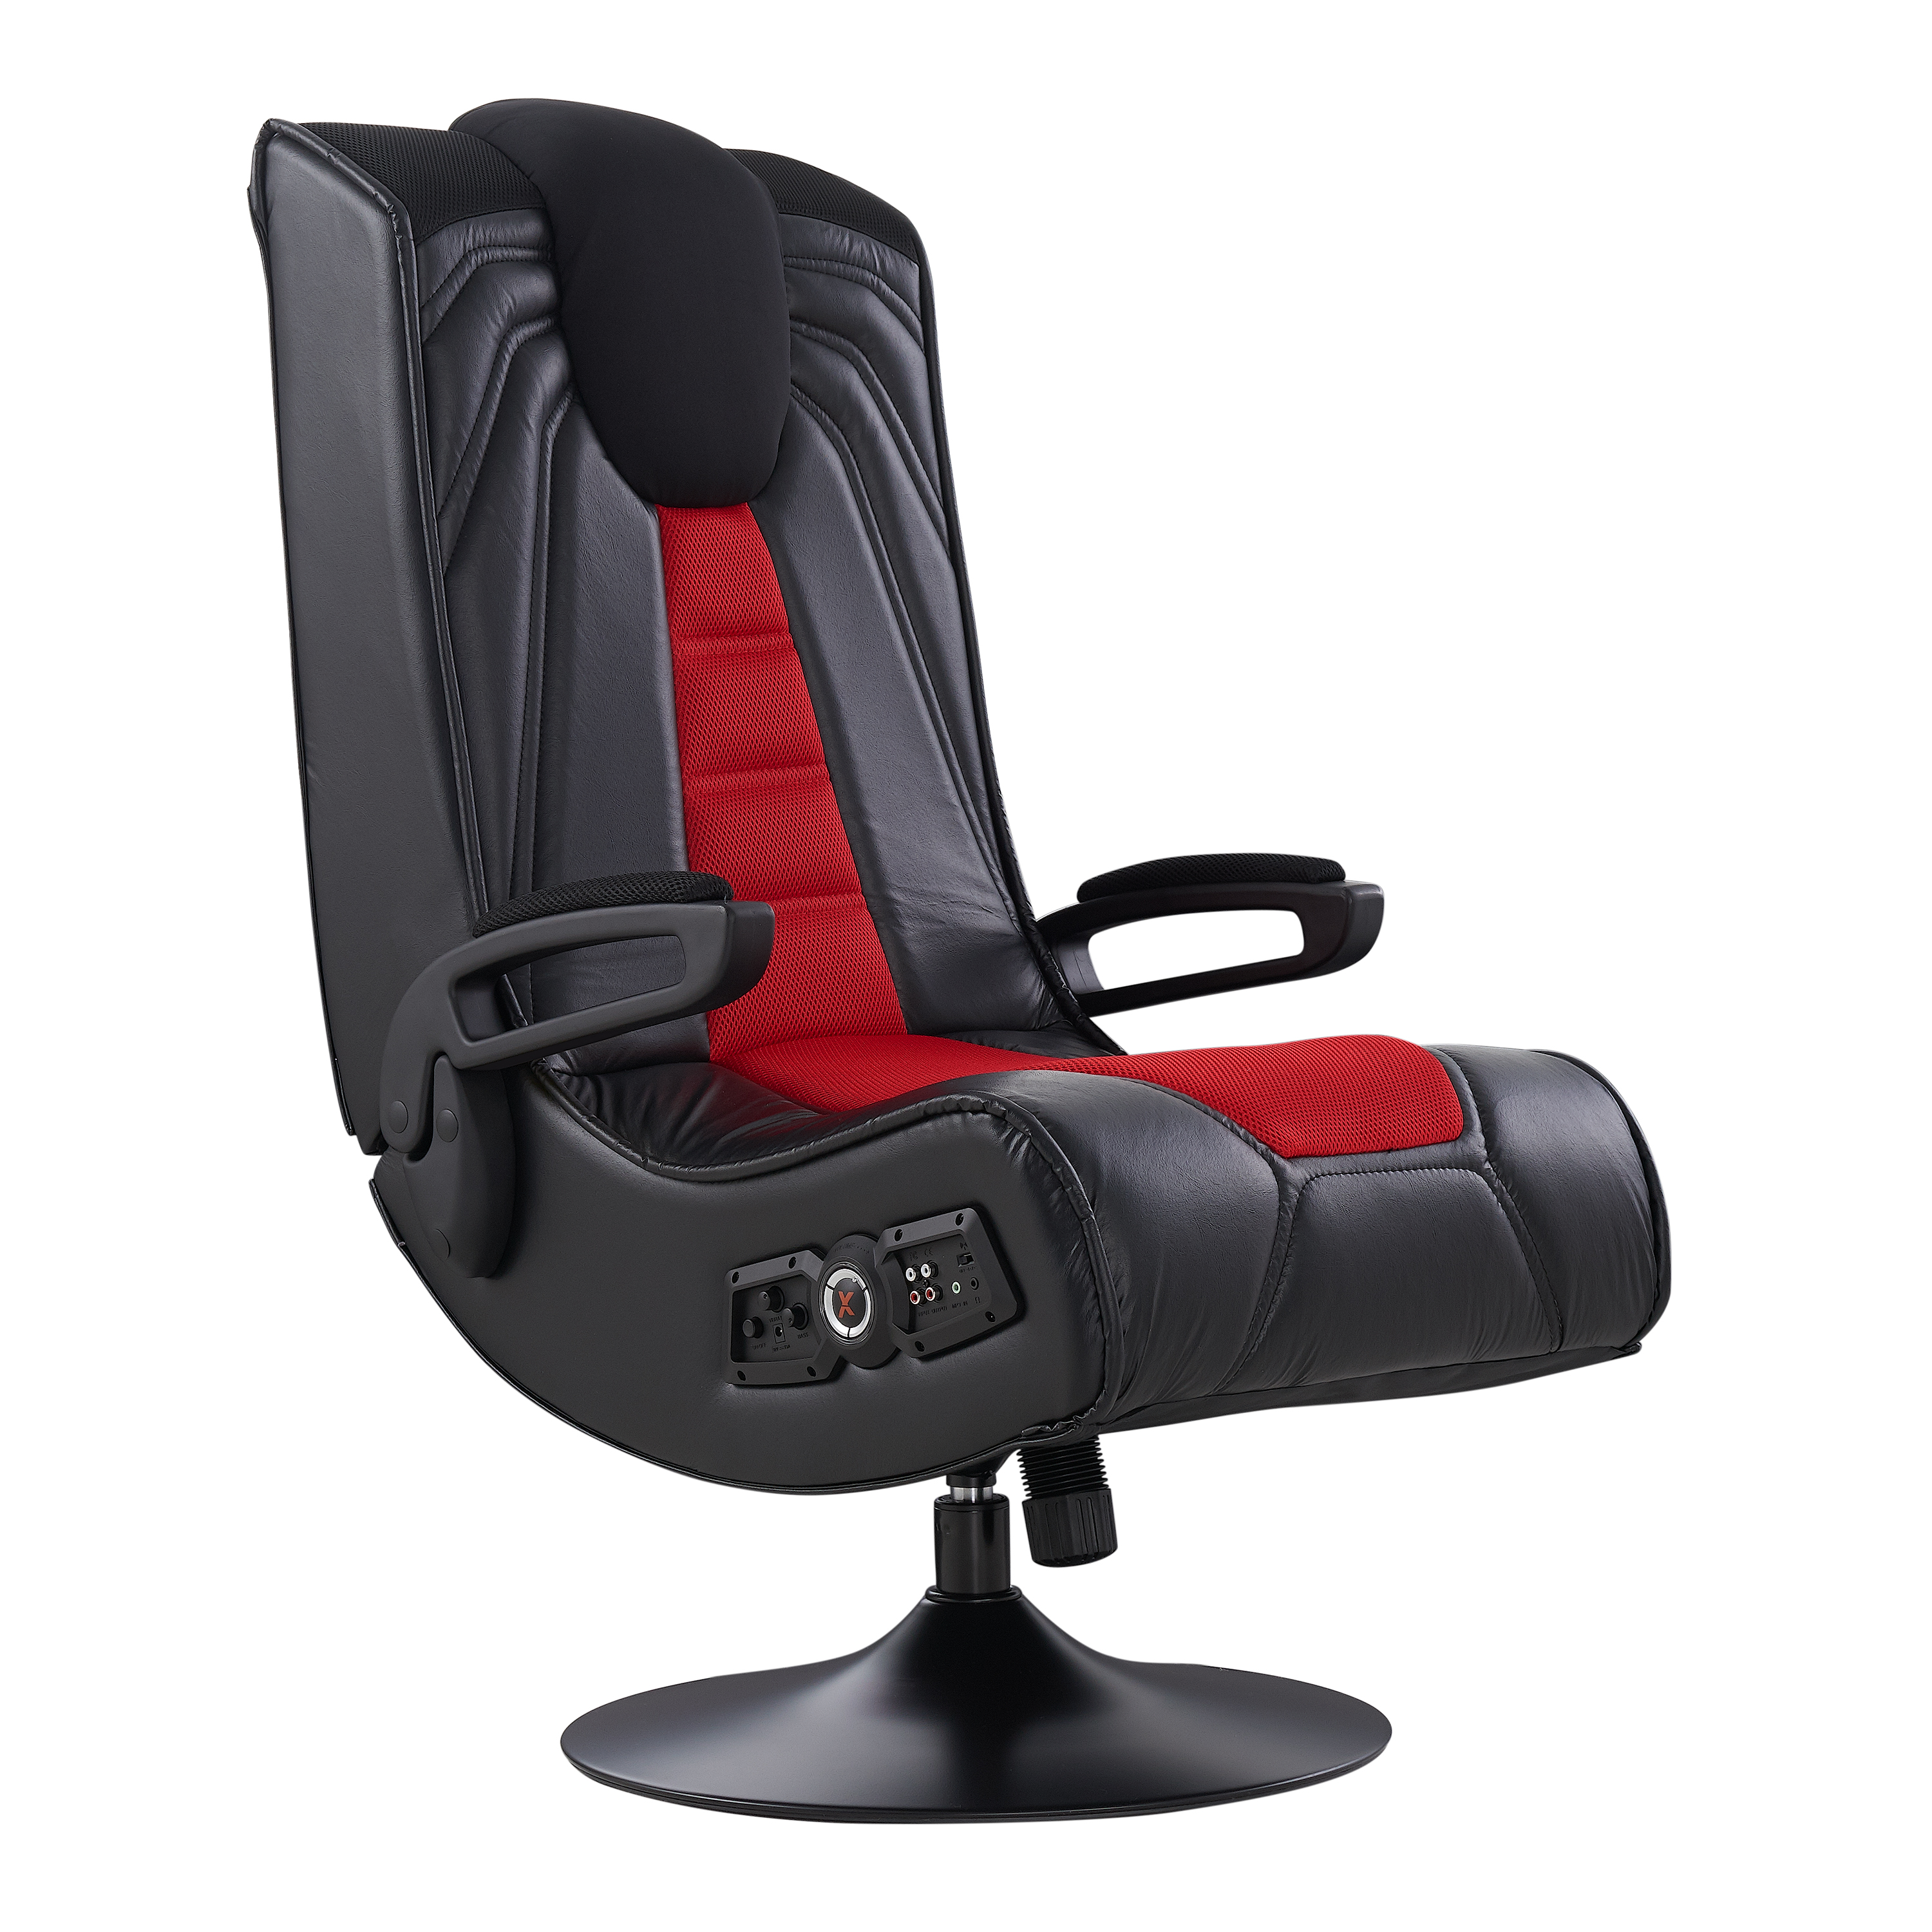 X Rocker Spider 2.1 Wireless Gaming Chair Rocker with Vibration, Black/Red